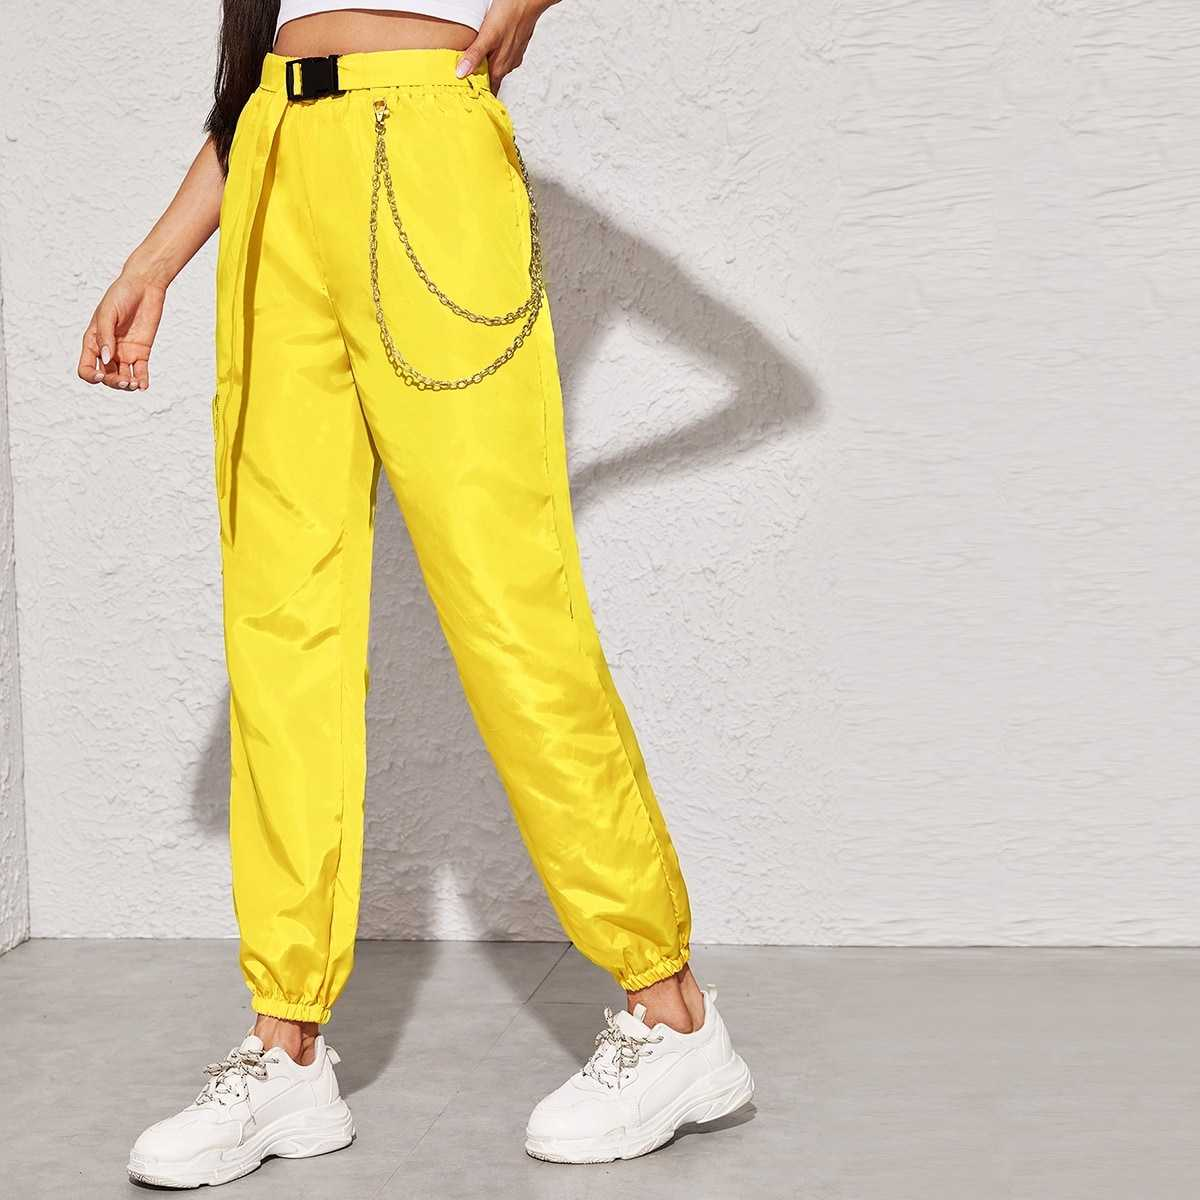 Neon Yellow Chain Detail Belted Cargo Pants in Yellow Bright by ROMWE on GOOFASH